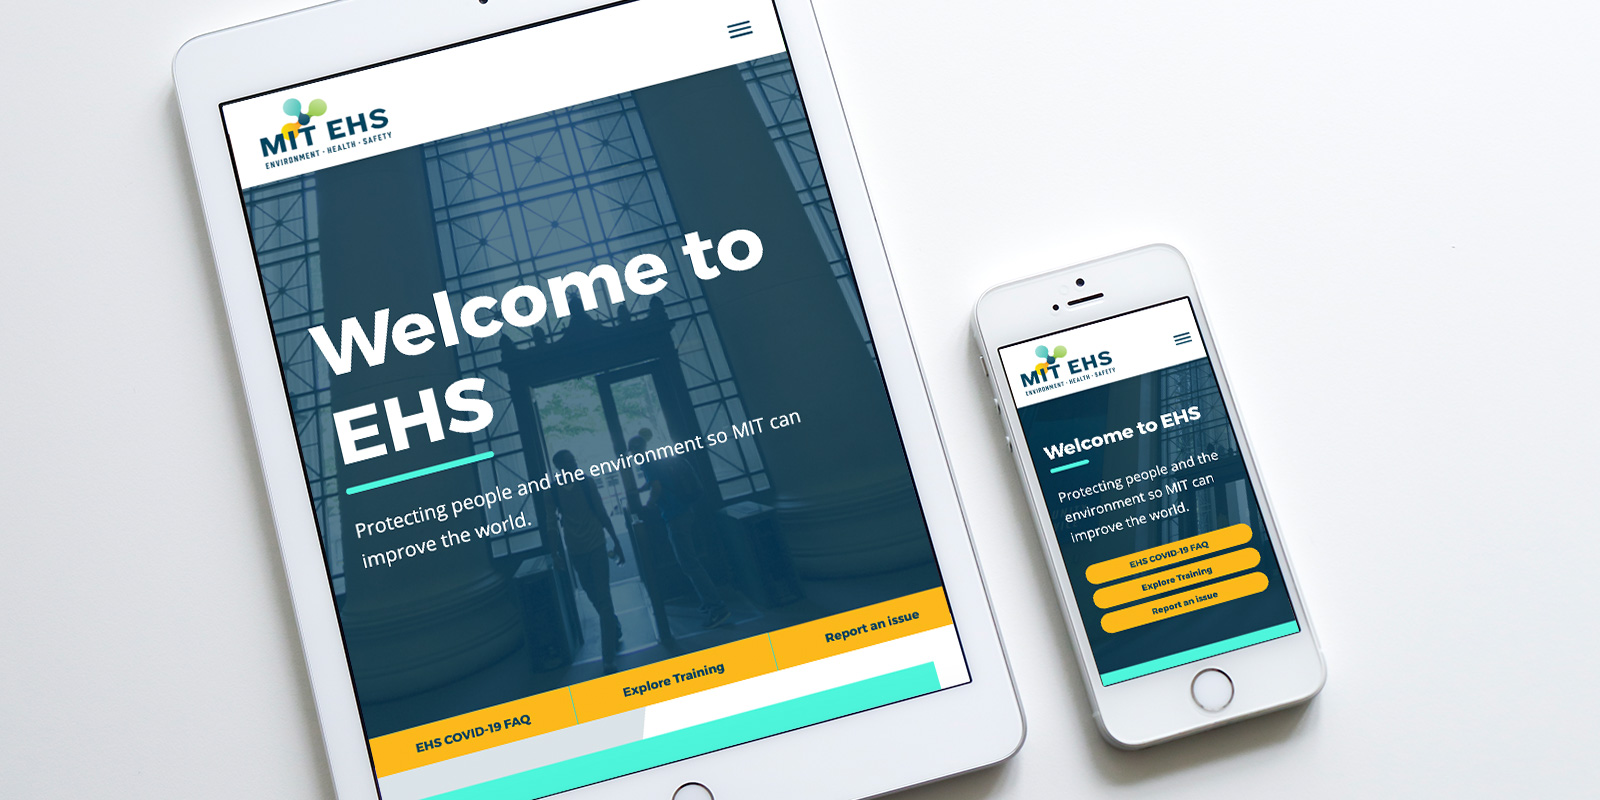 MIT EHS research and teaching website design